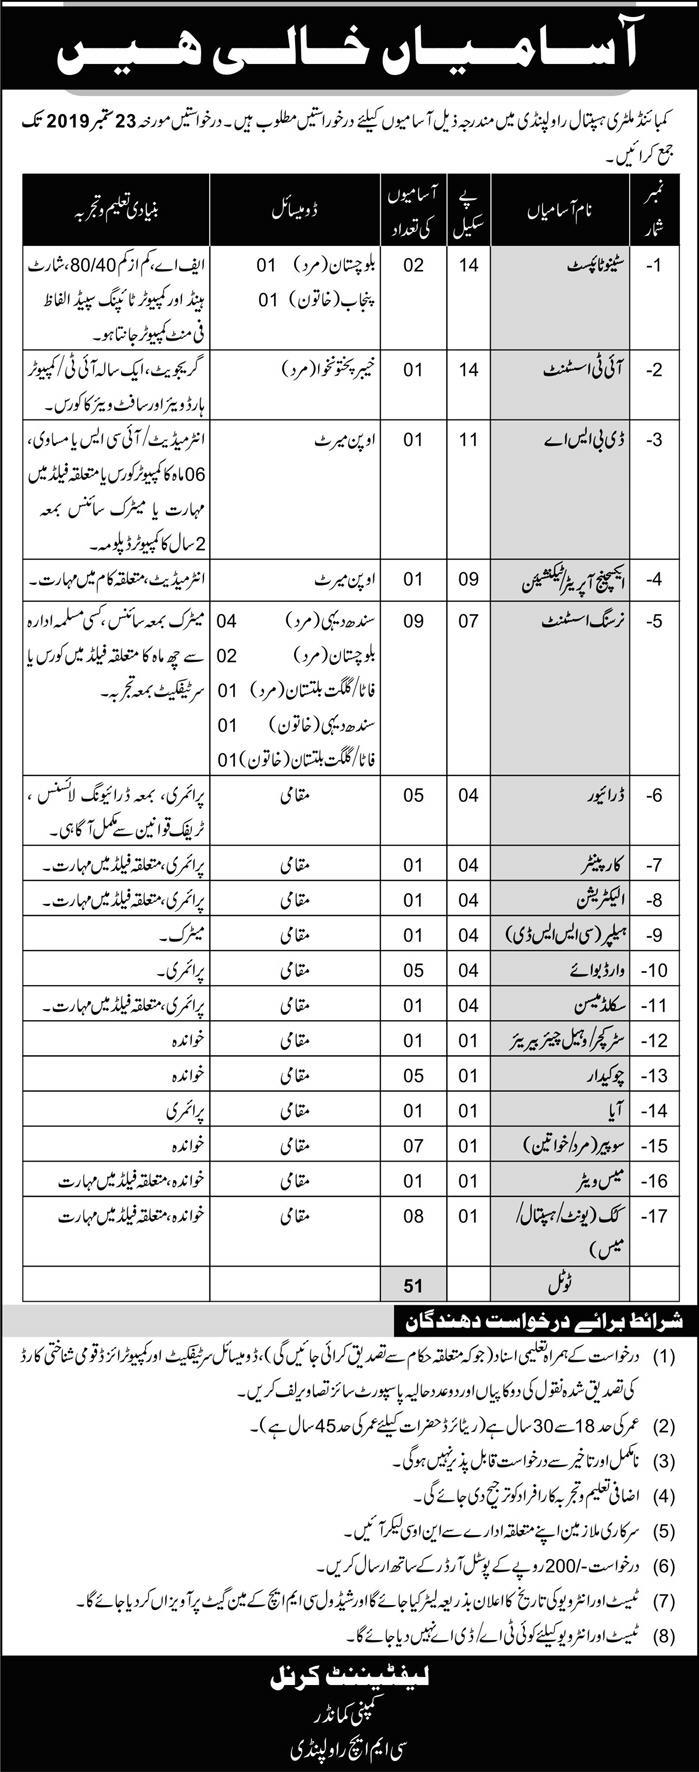 Commandant military hospital Rawalpindi CMH Jobs